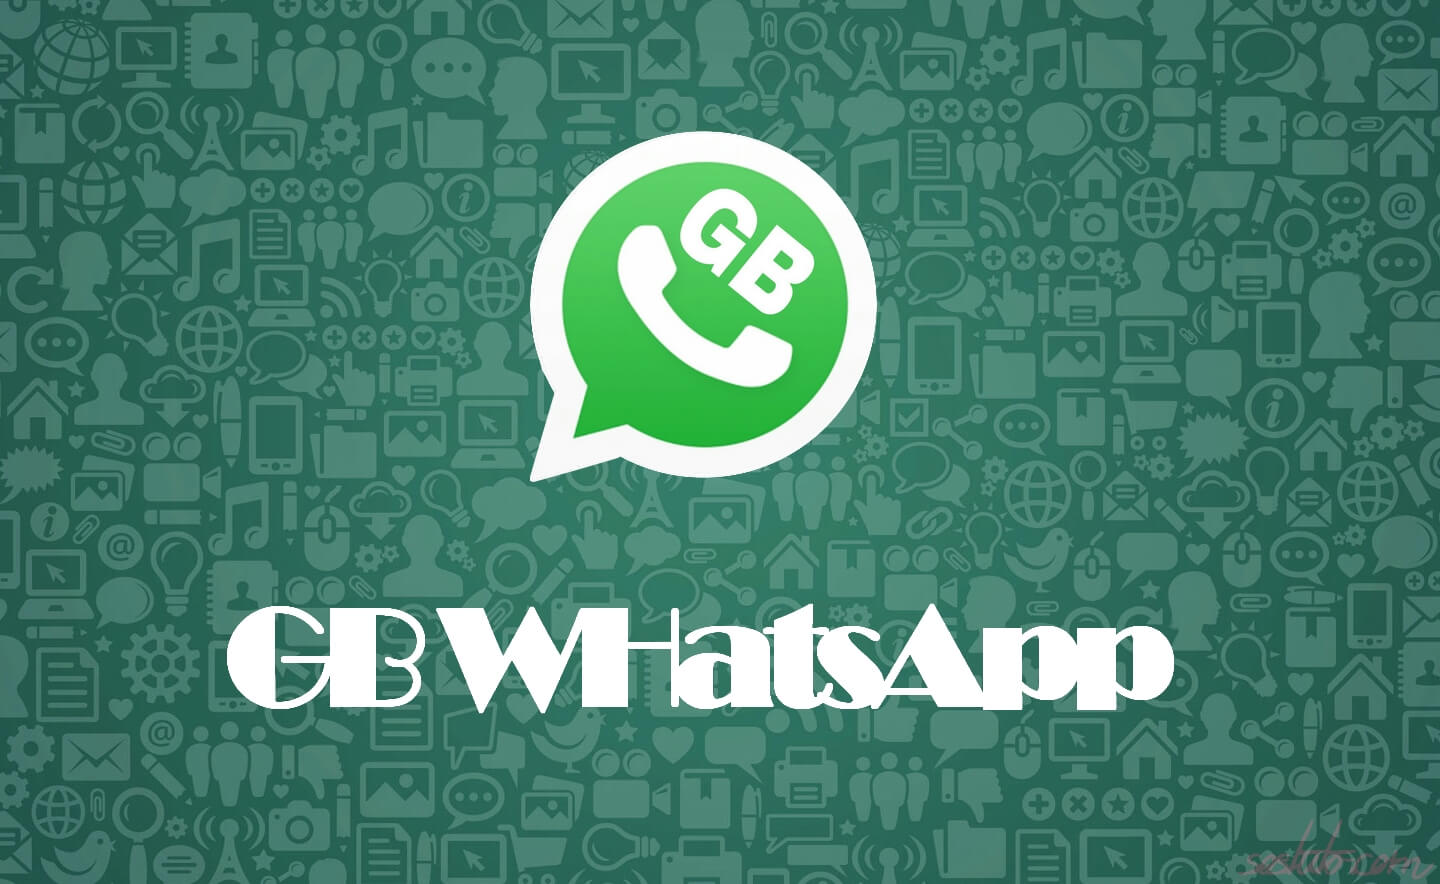 gbwhatsapp 6.65 et whatsapp plus 6.65 pour android